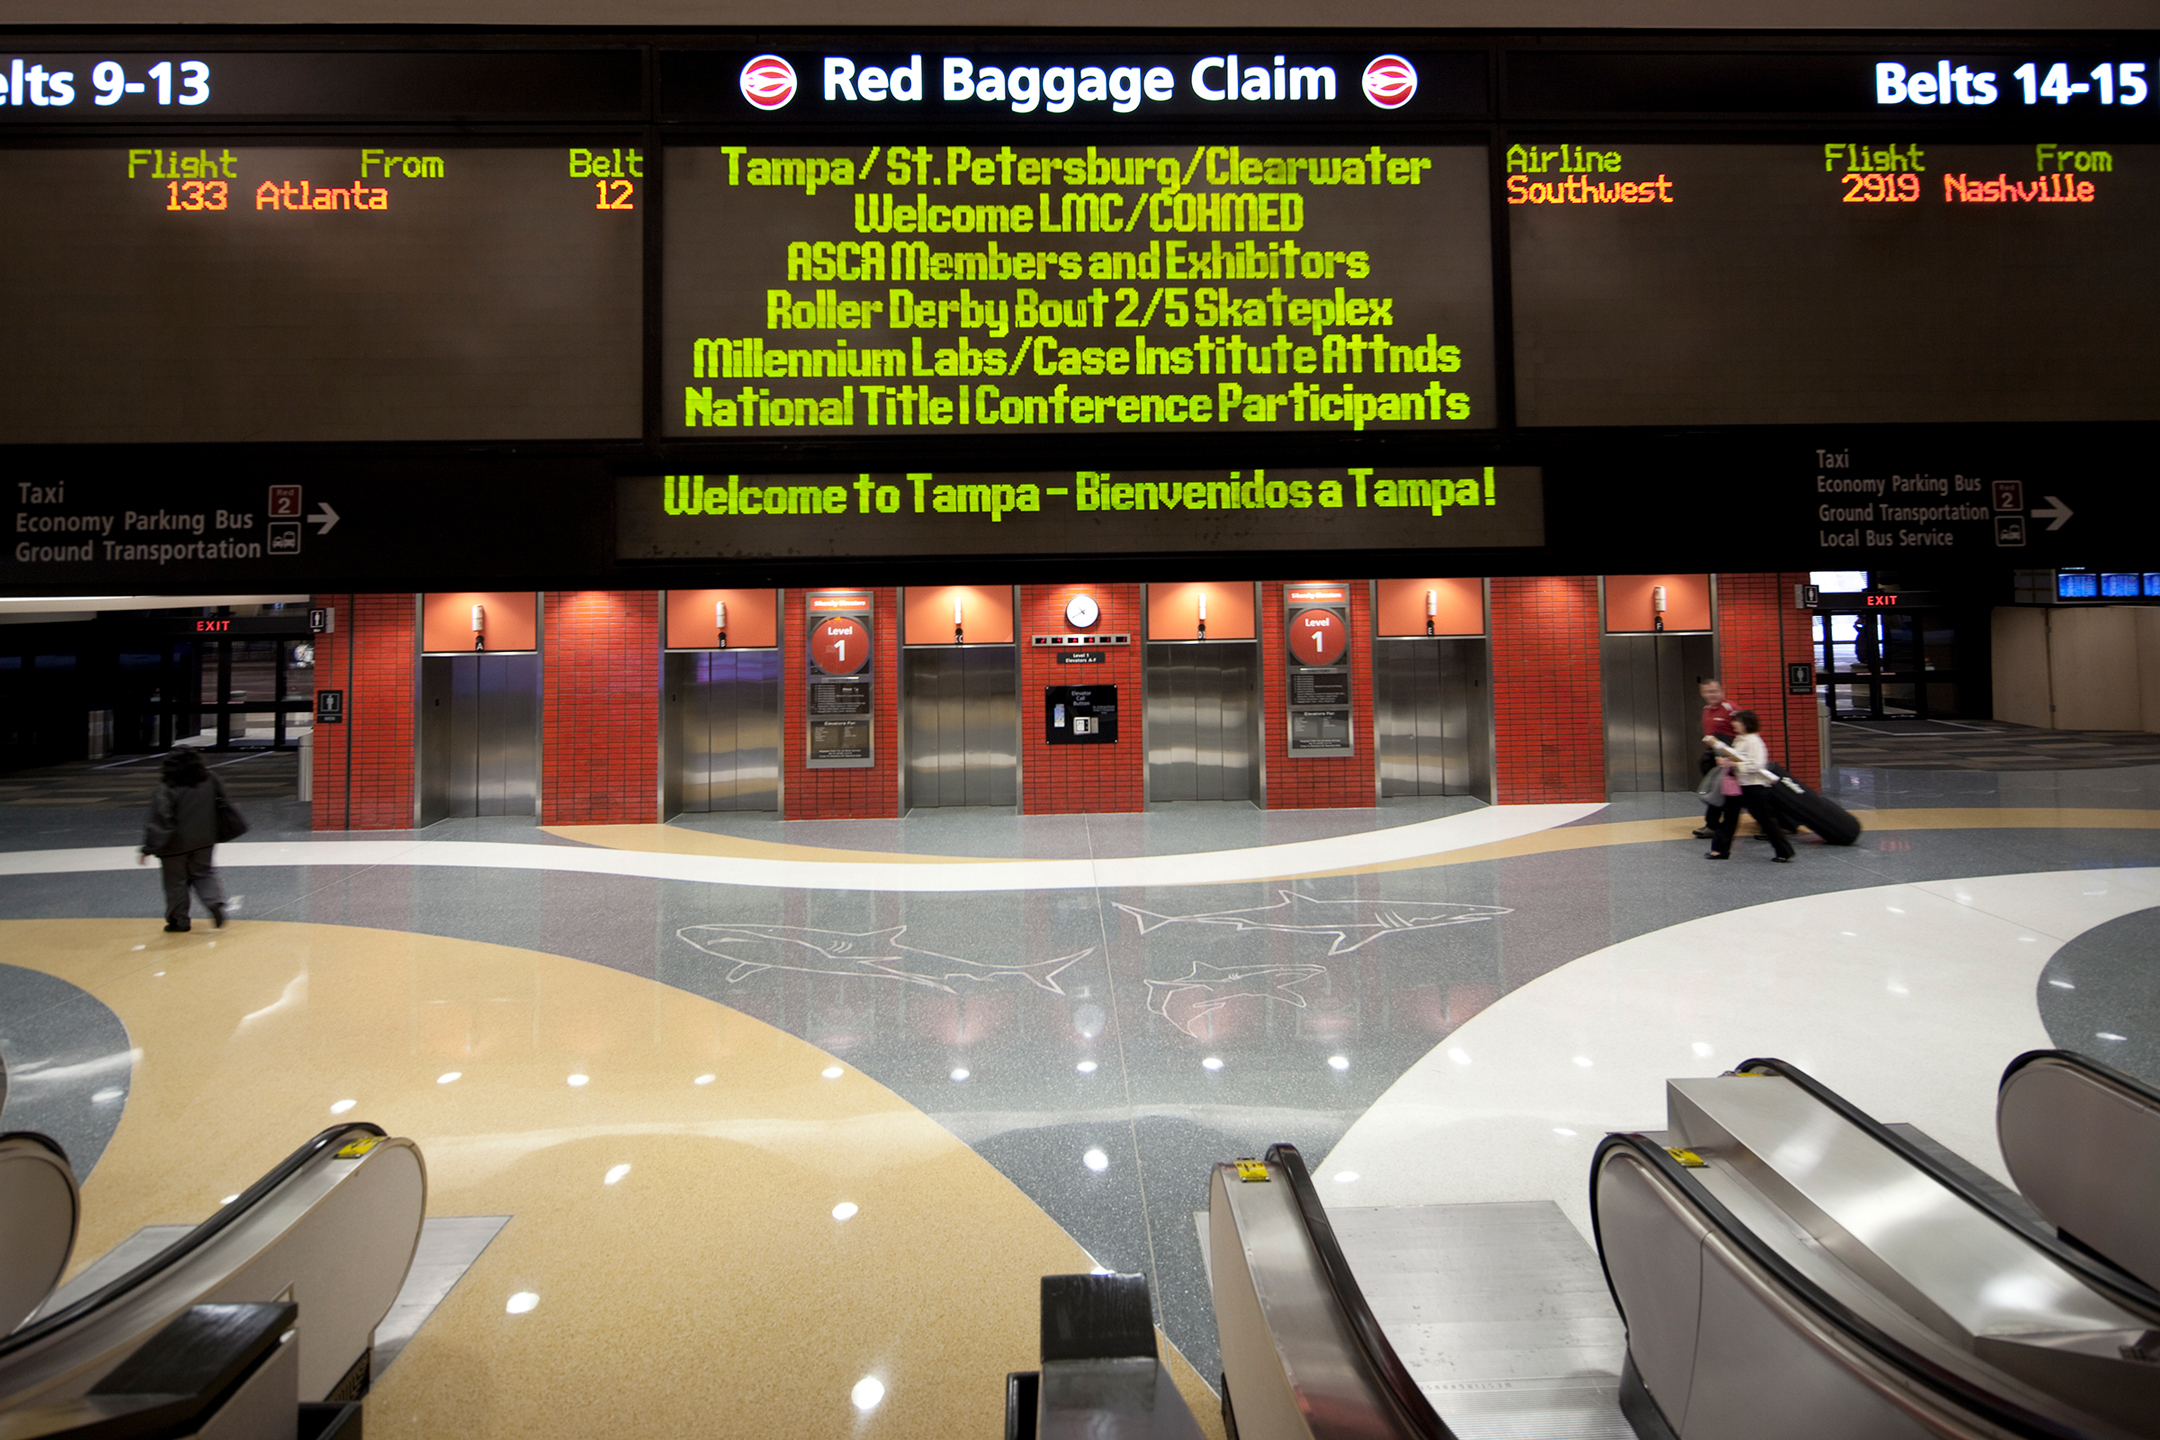 Baggage claim area at the bottom of a set of escalators